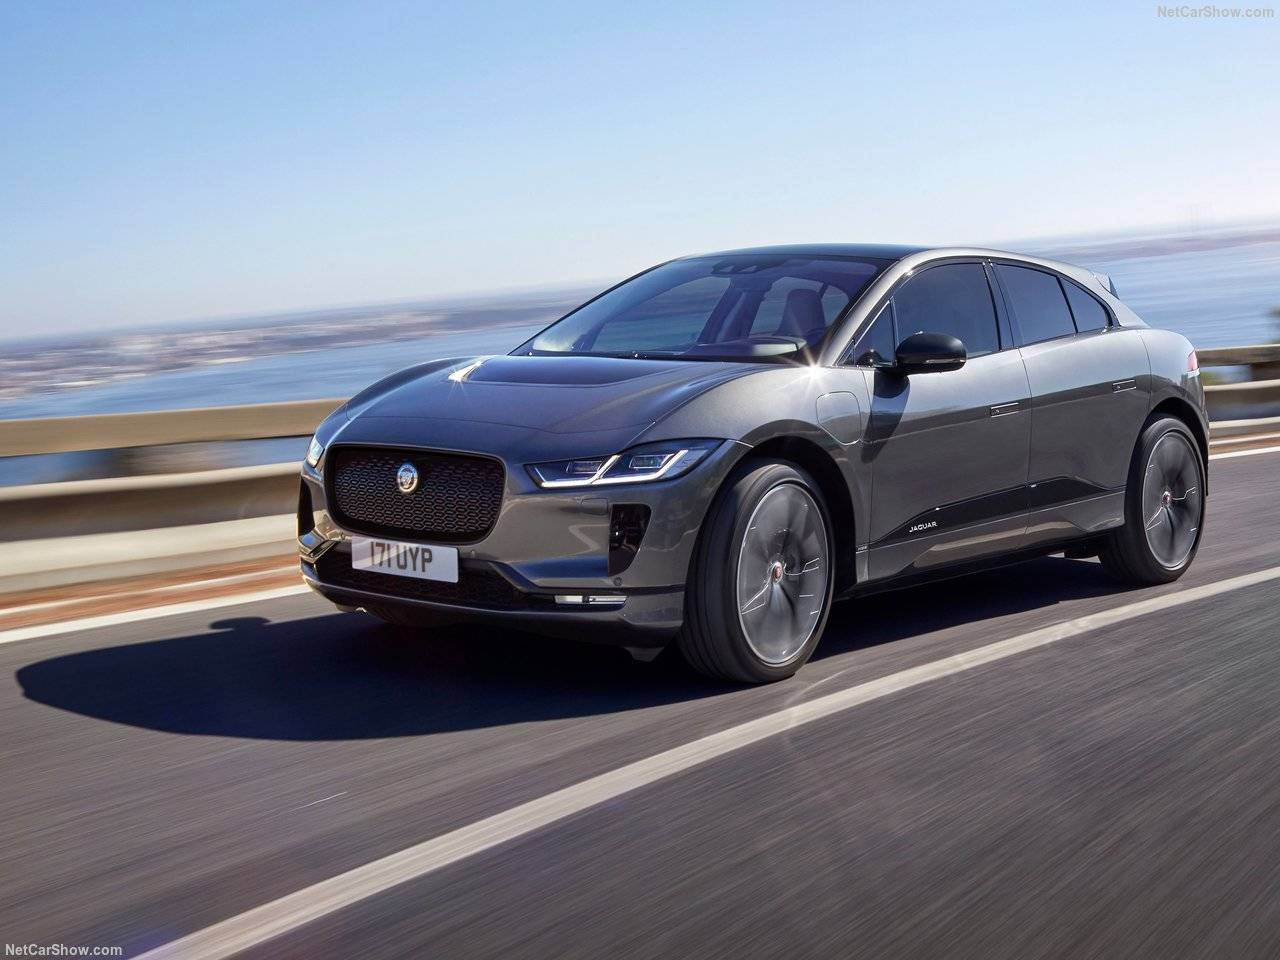 JaguarがI-Paceを発表 。最新EVのスペック・デザイン・価格等を検証。日本発売は2018年中頃か!